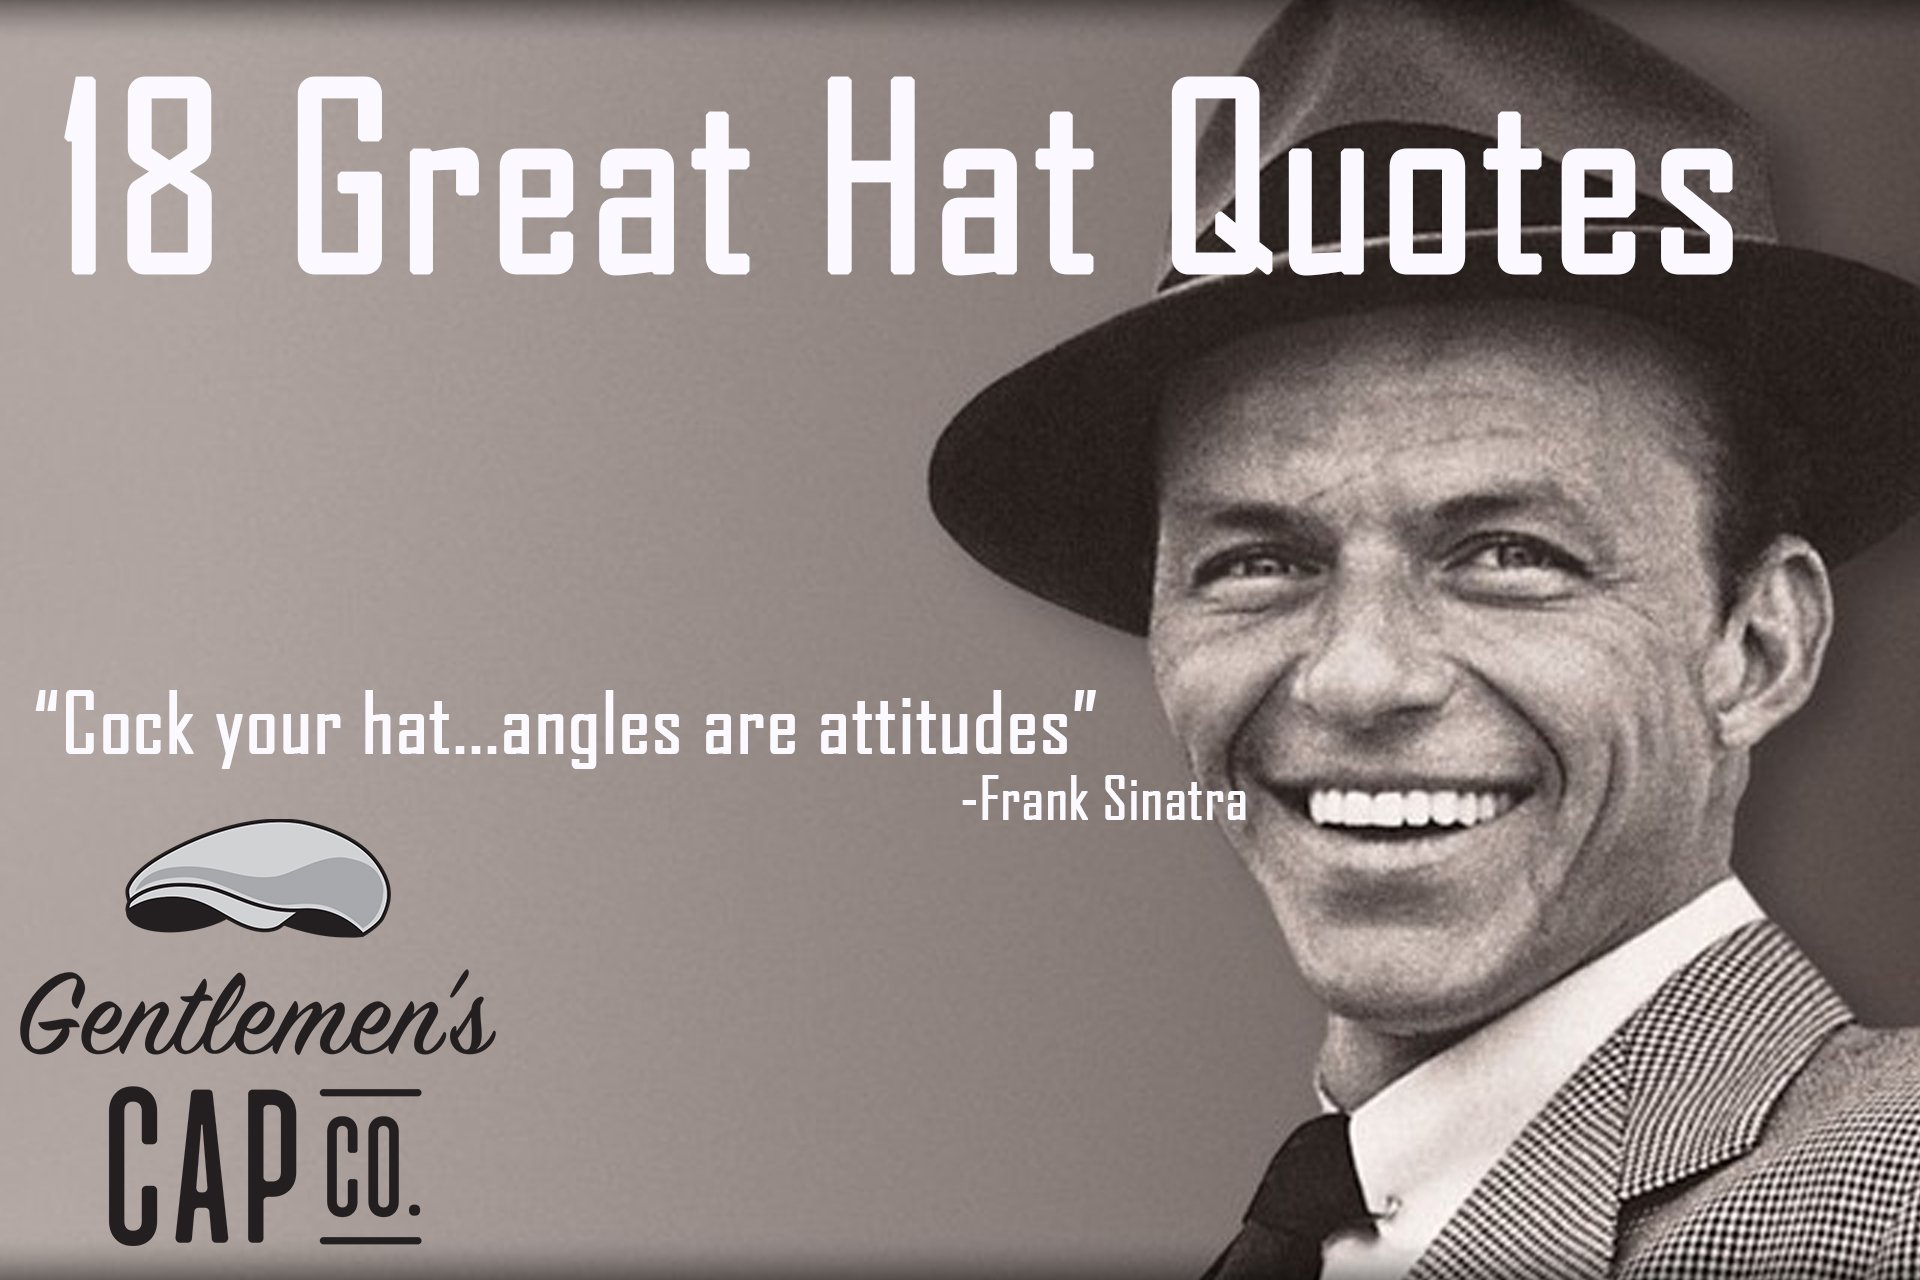 f3bf75e8e6449 18 Great Hat Quotes - GentlemensCapCo.com